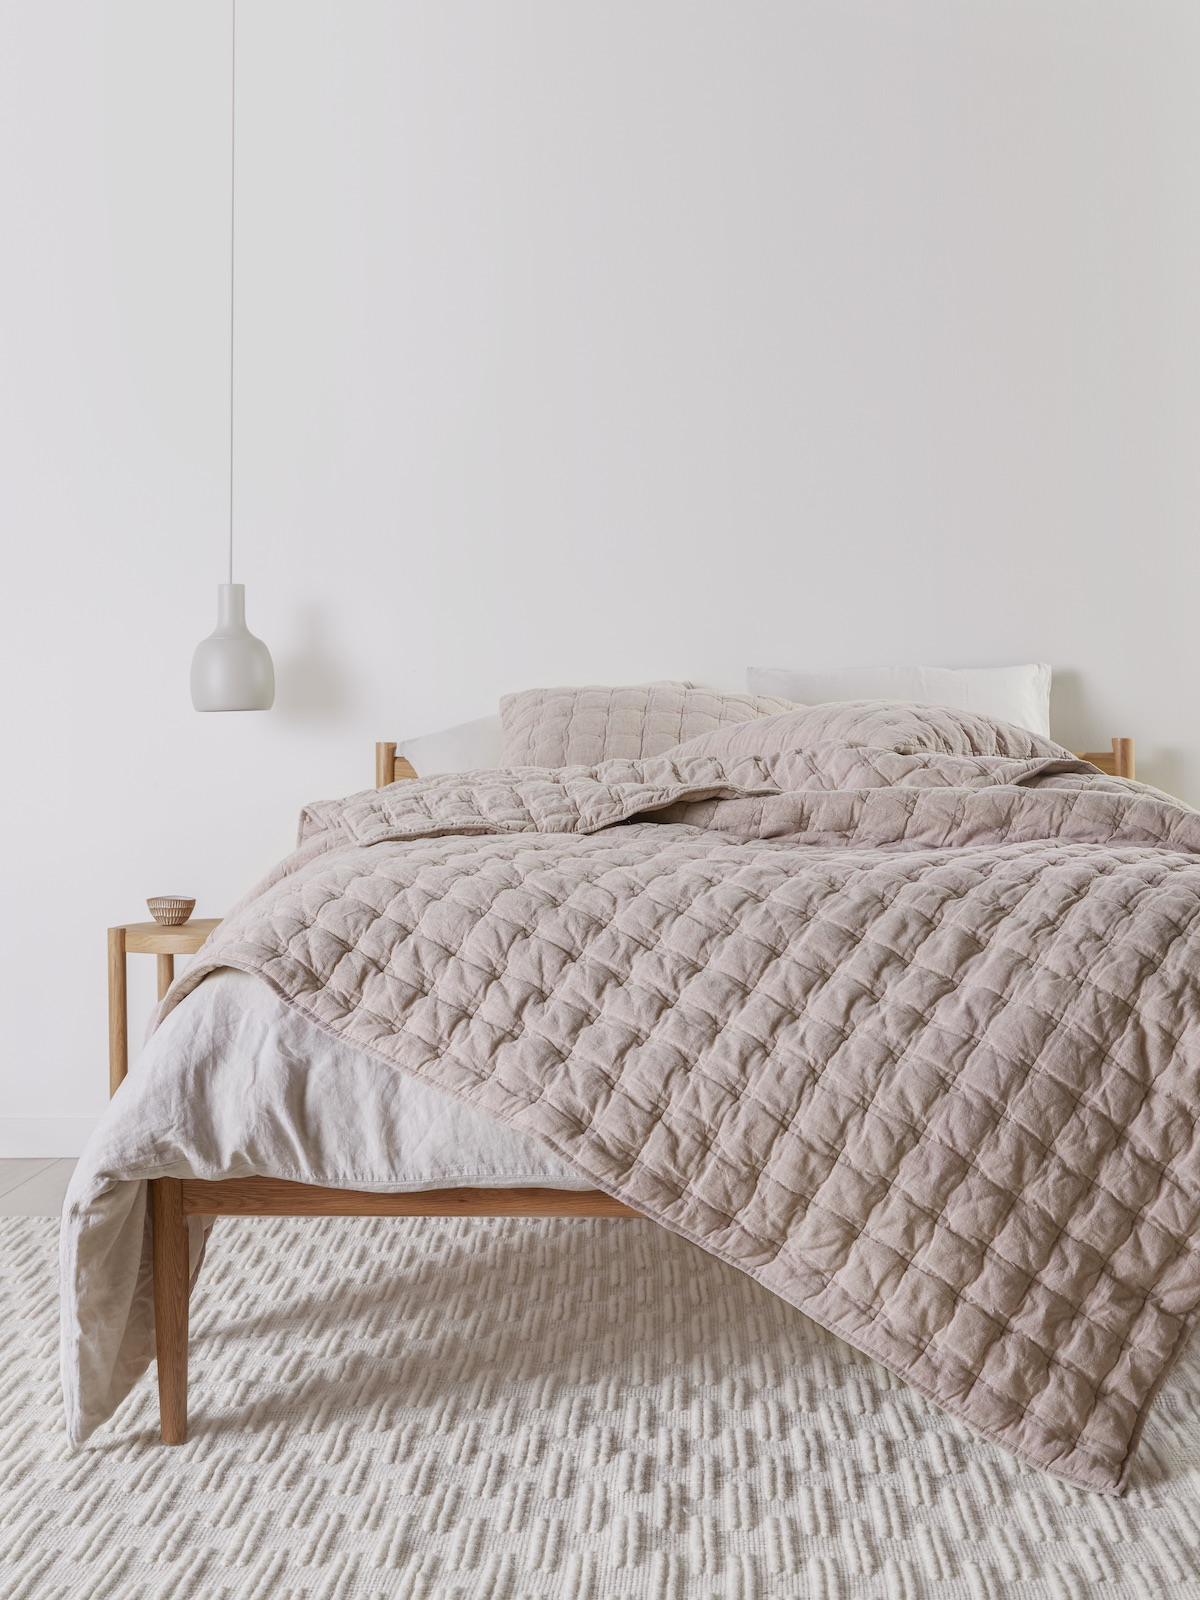 Quilted blush bedspread on unmade bed